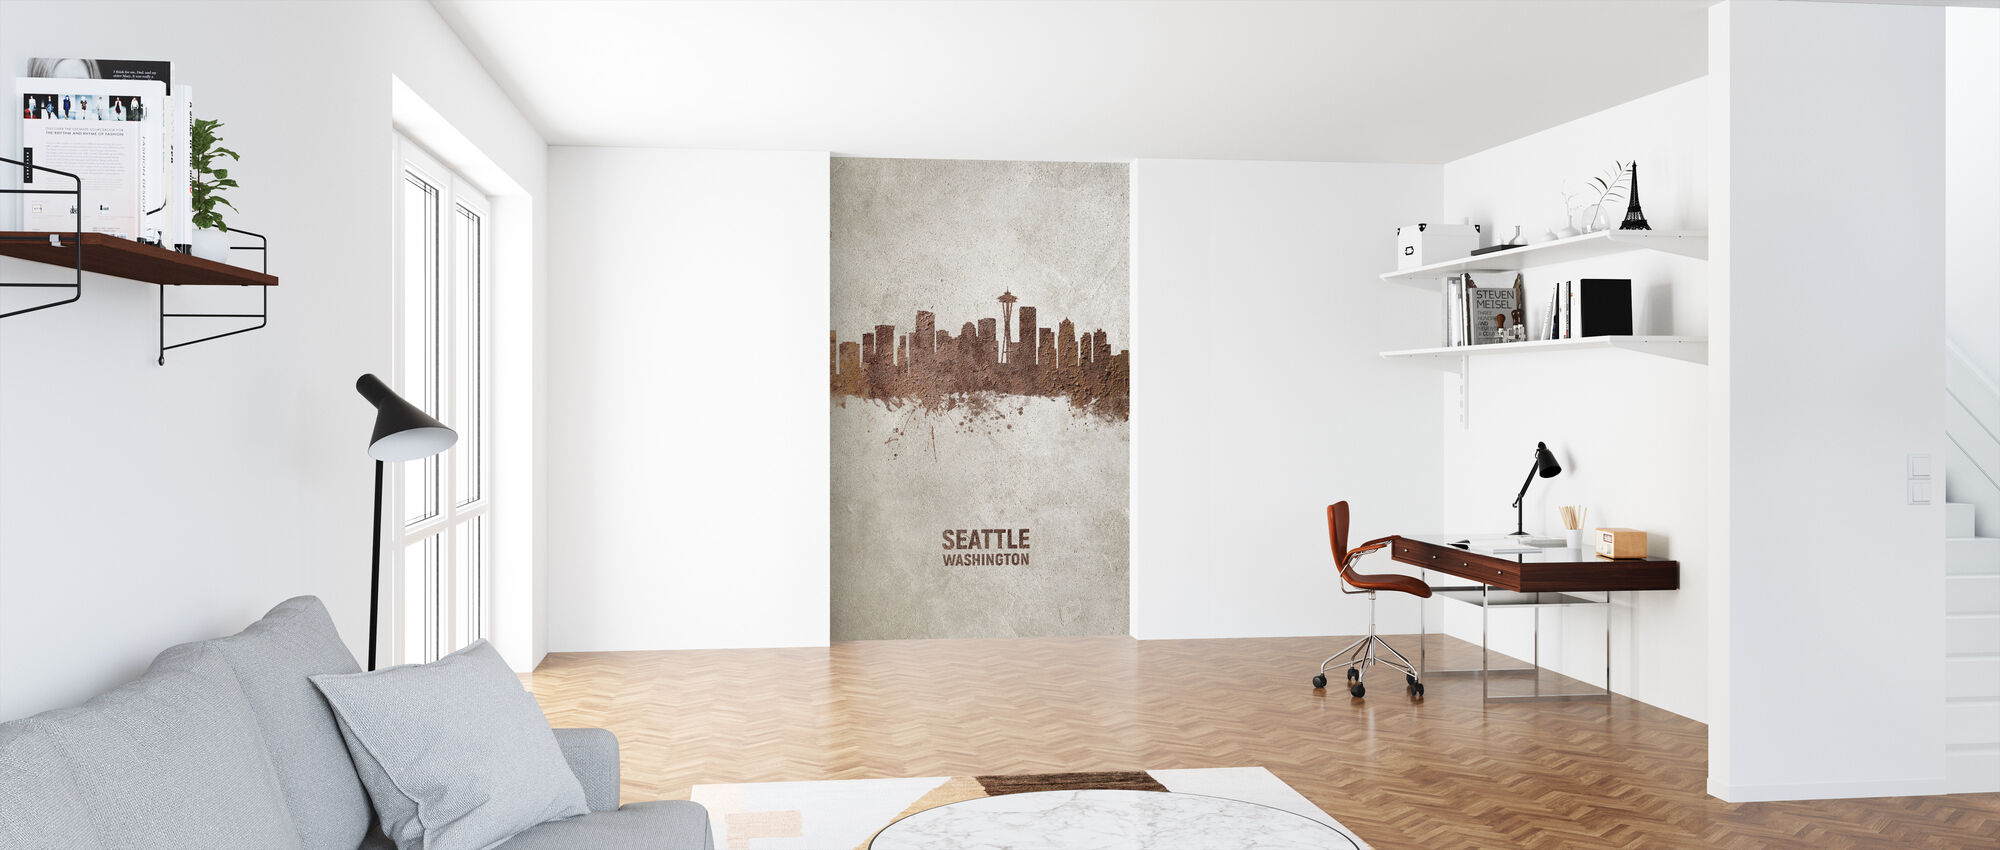 Seattle Washington Rust Skyline - Wallpaper - Office